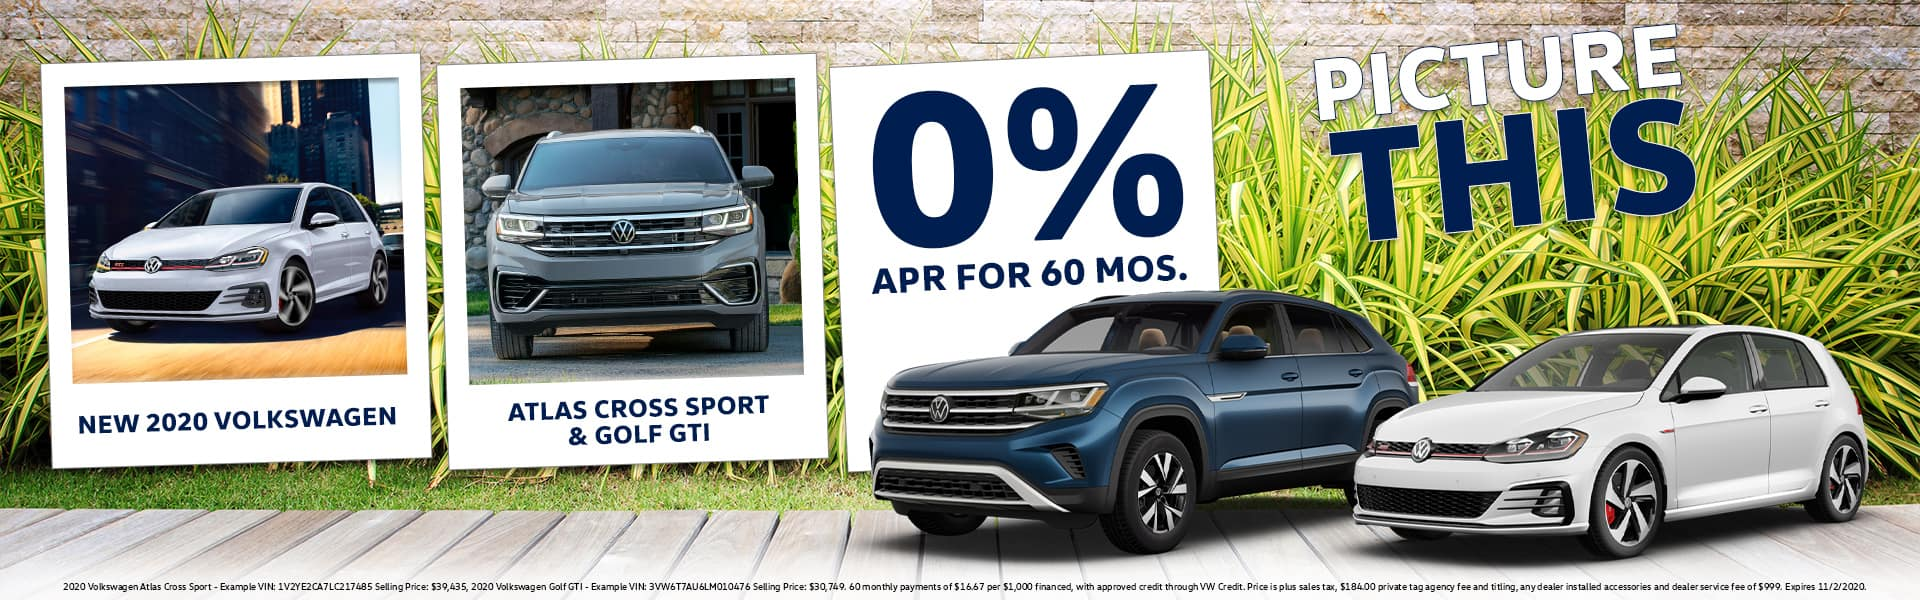 PICTURE THIS | 2020 Volkswagen Golf GTI & Atlas Cross Sport | 0% APR For 60 Months